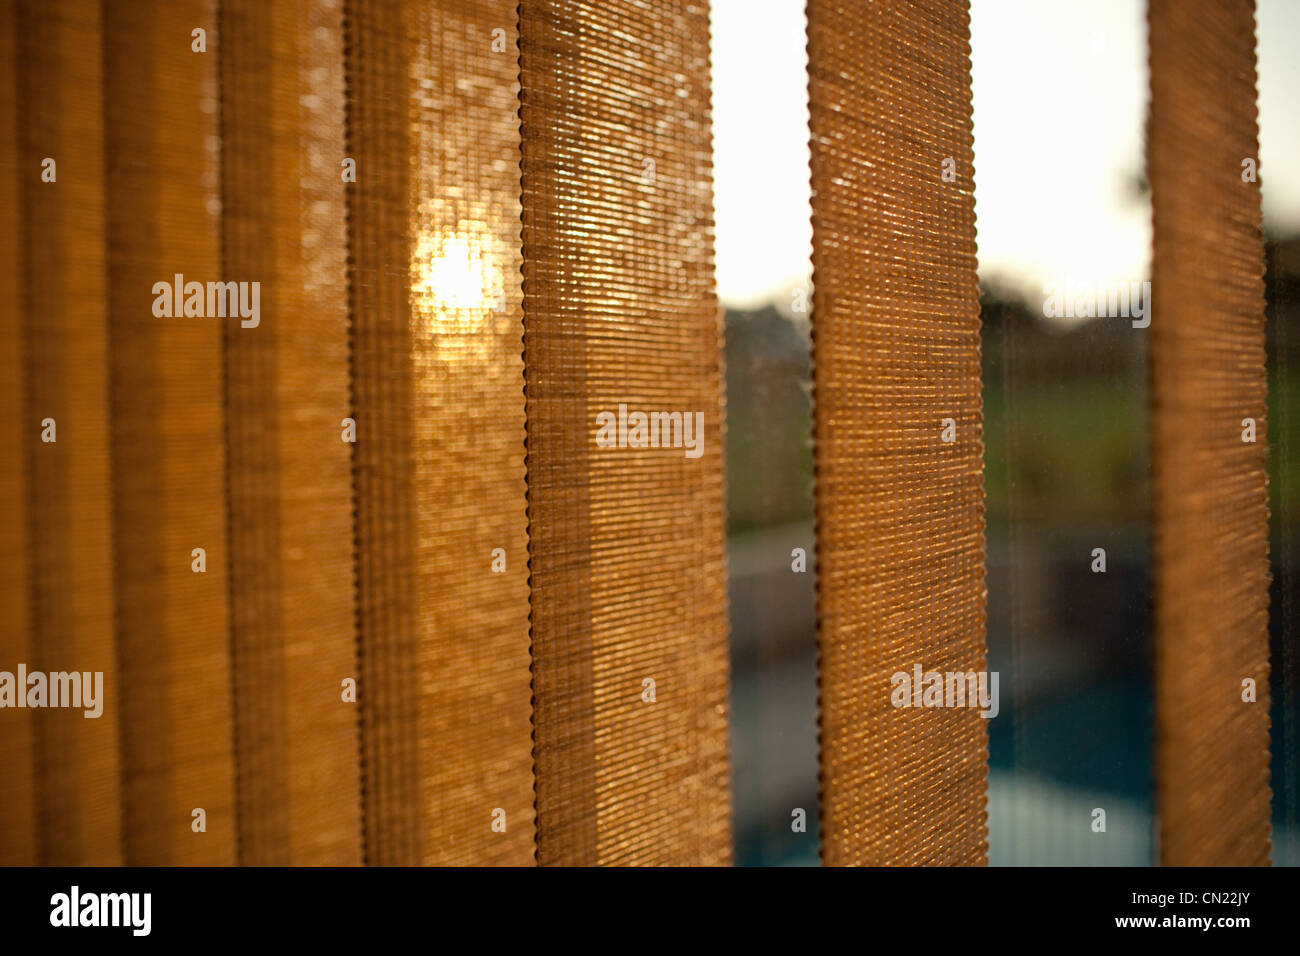 Window blinds at sunset - Stock Image